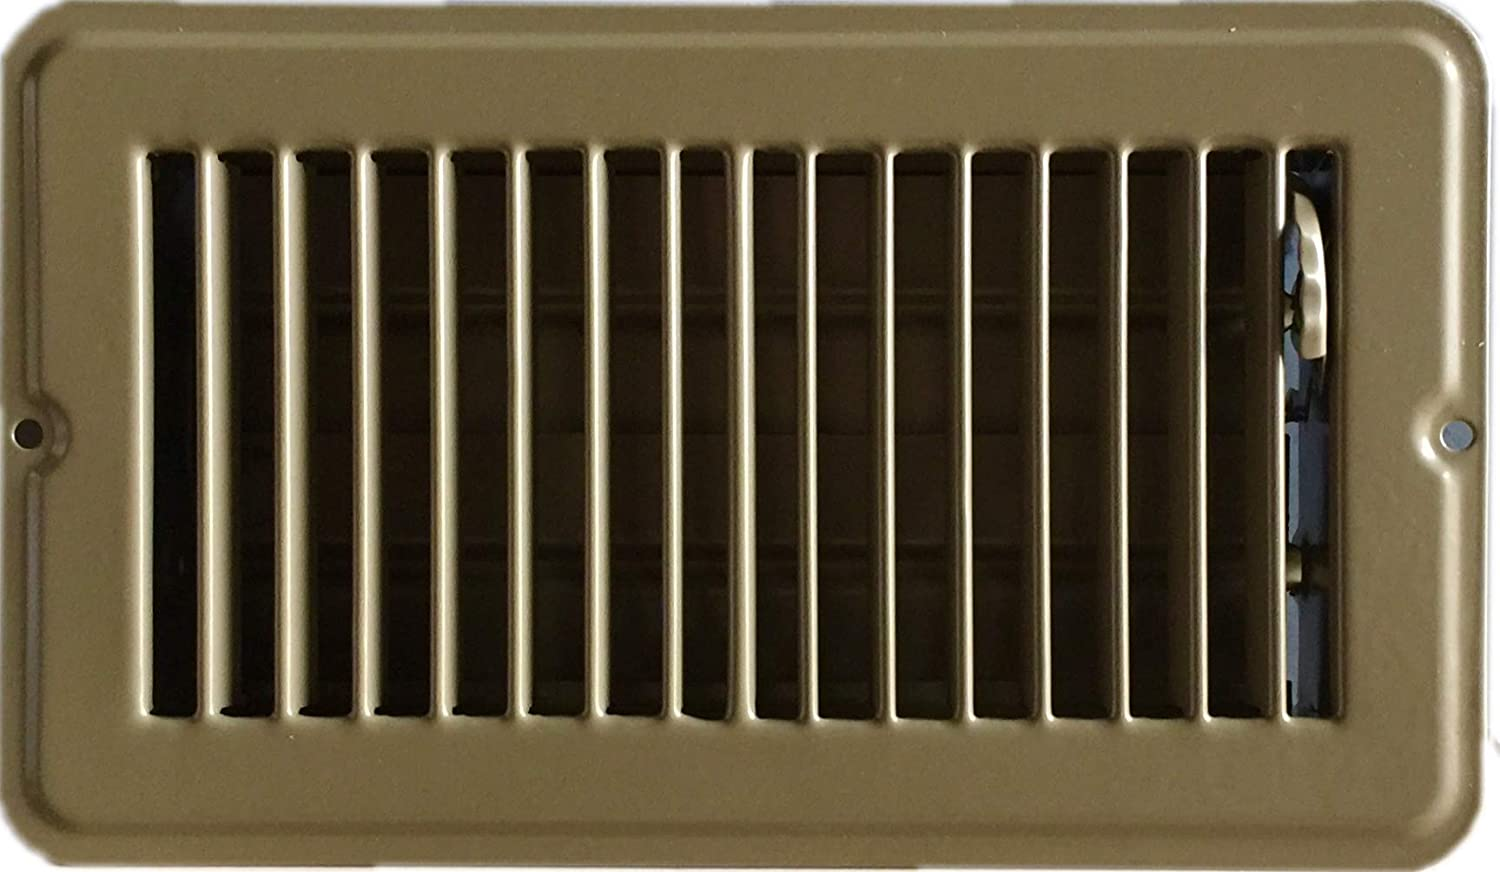 "RV and Home Brown Stamped Steel Floor Diffuser/Register with Damper 8"" X 4"" (Duct Opening Size) Outside Dimension 9.6""x 5.6"""